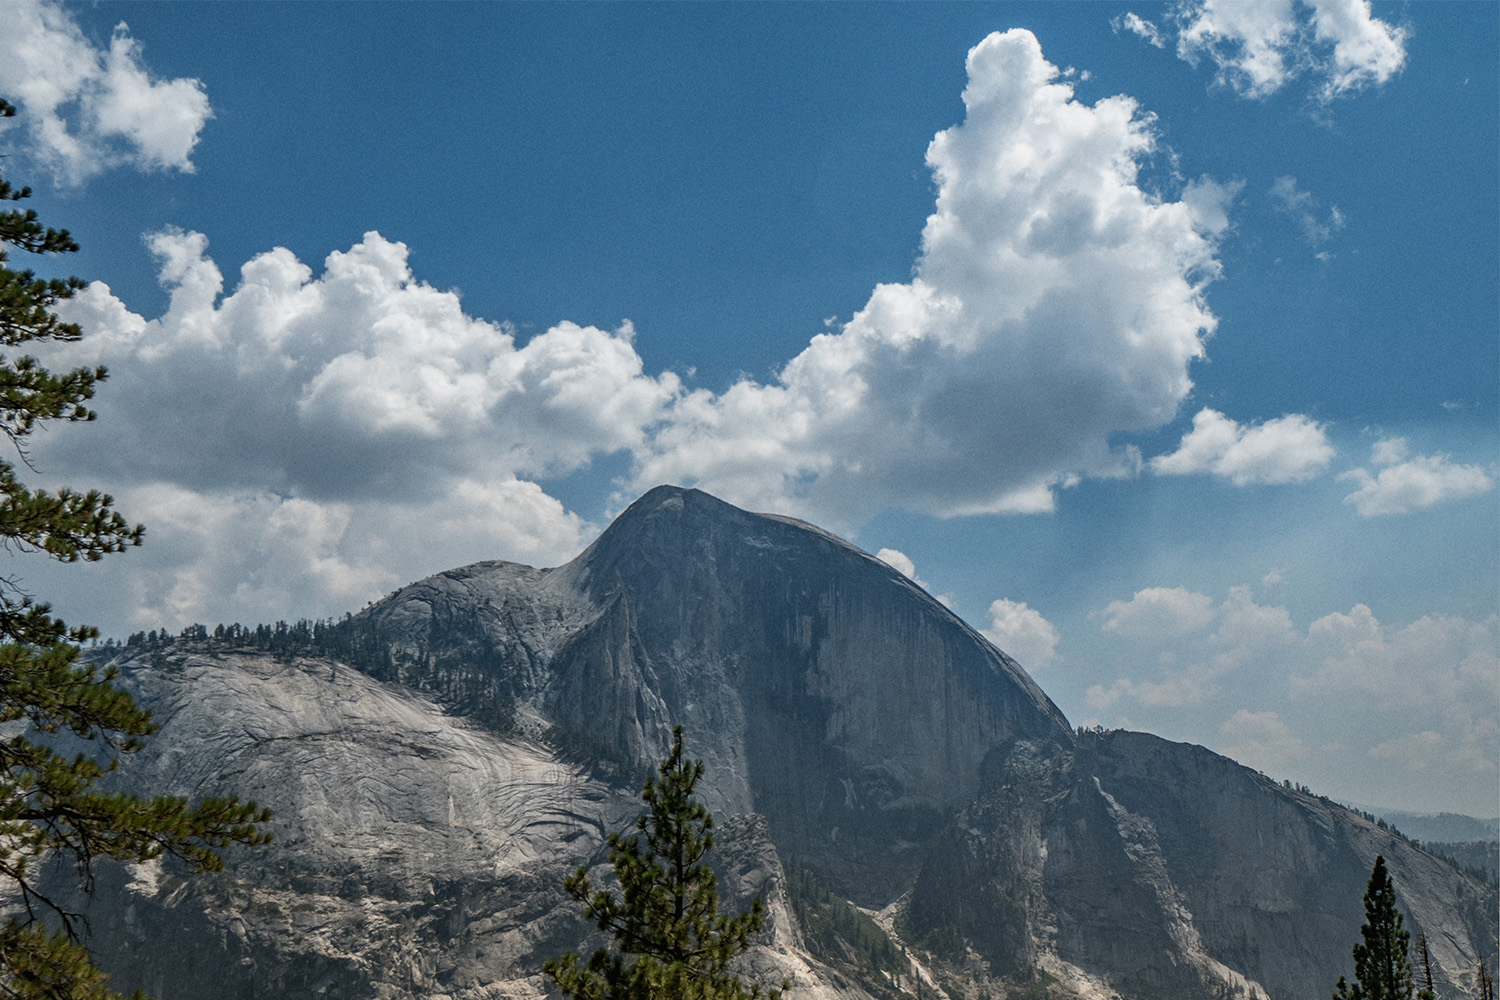 You could practically reach out and touch Half Dome from Snow Creek Trail.